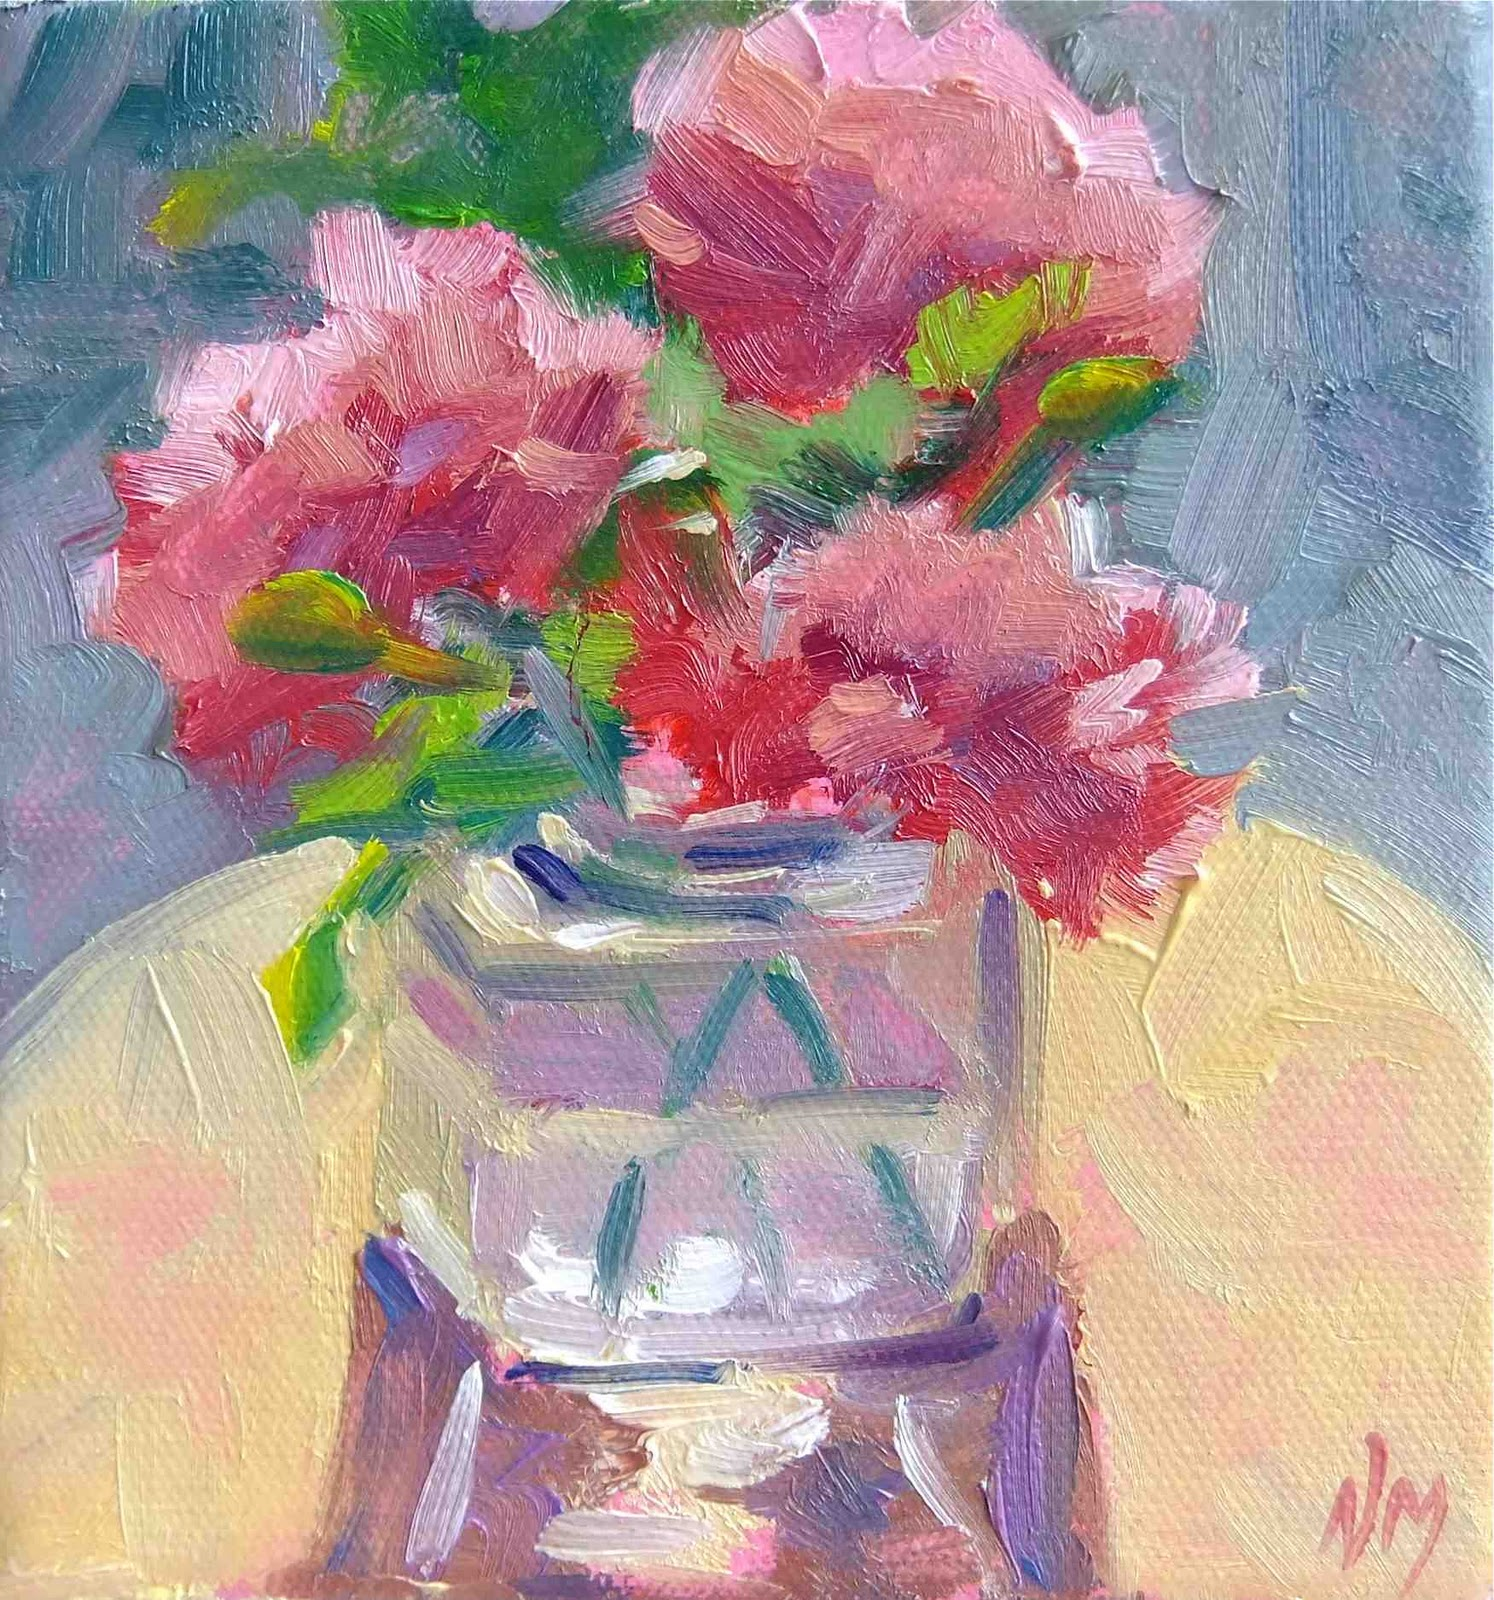 Oil Painting Flowers Red Carnation Macphail